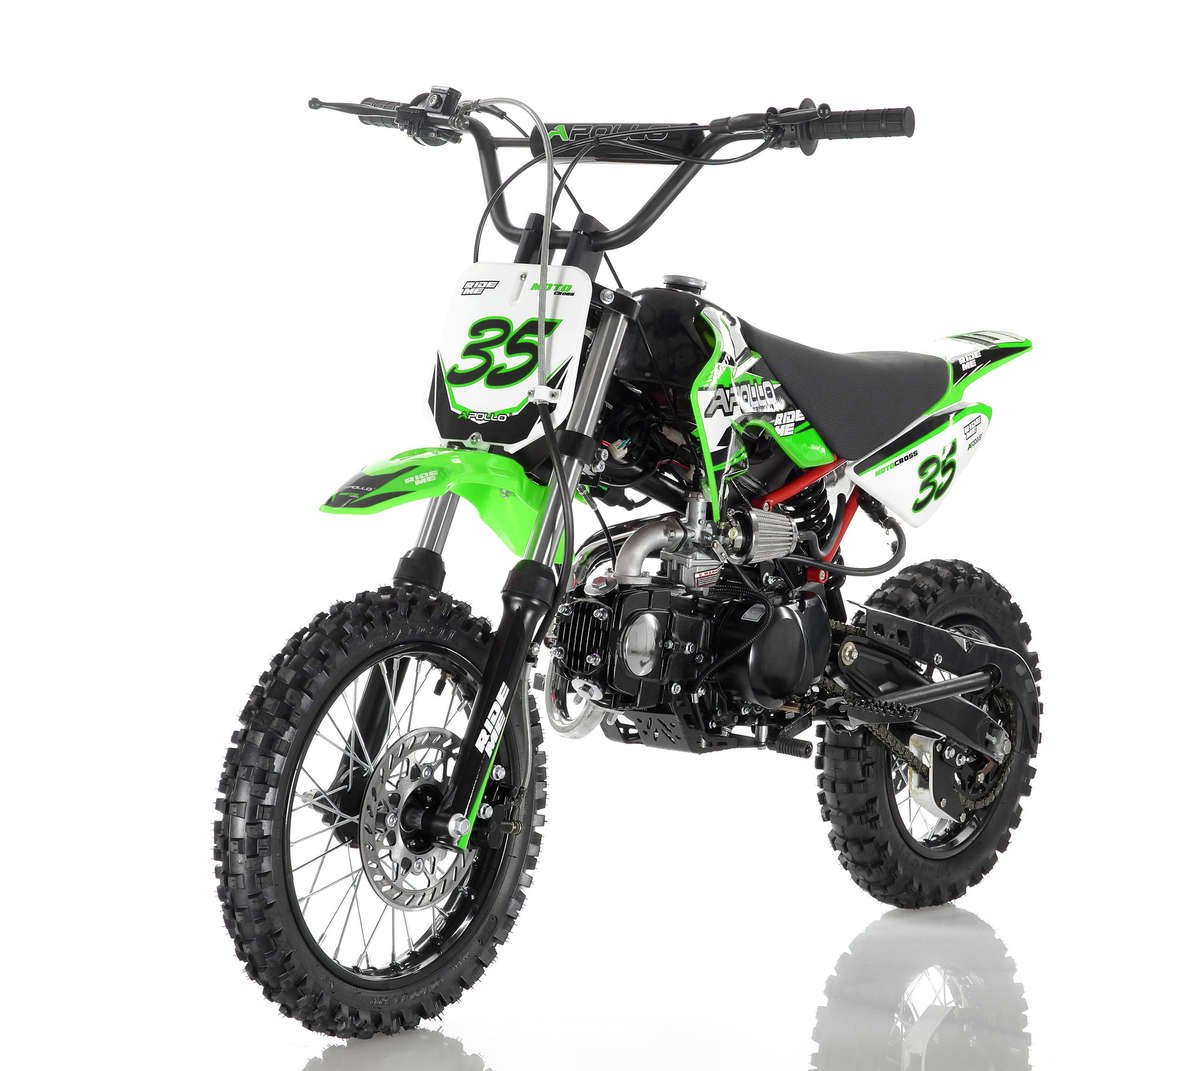 Apollo 35 Dirt Bike 125cc Green